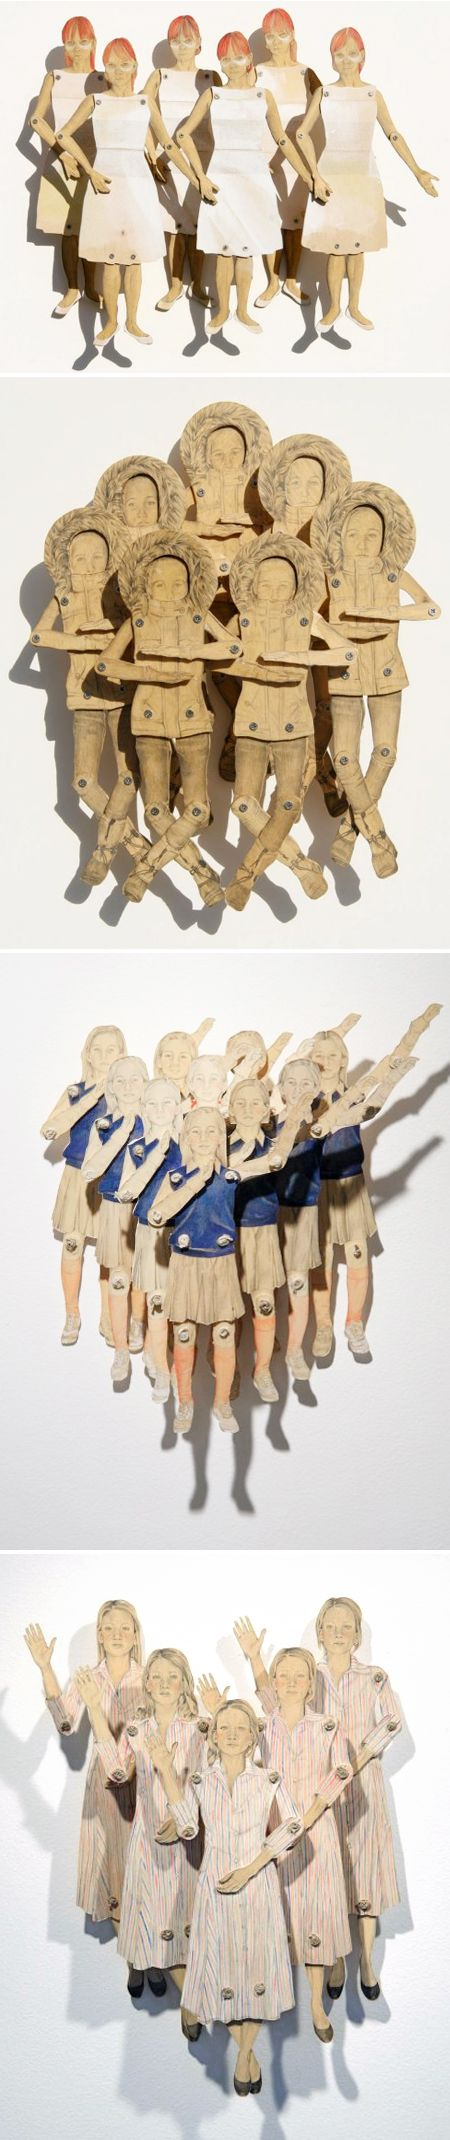 claire oswalt ~ wooden, moveable drawings <3